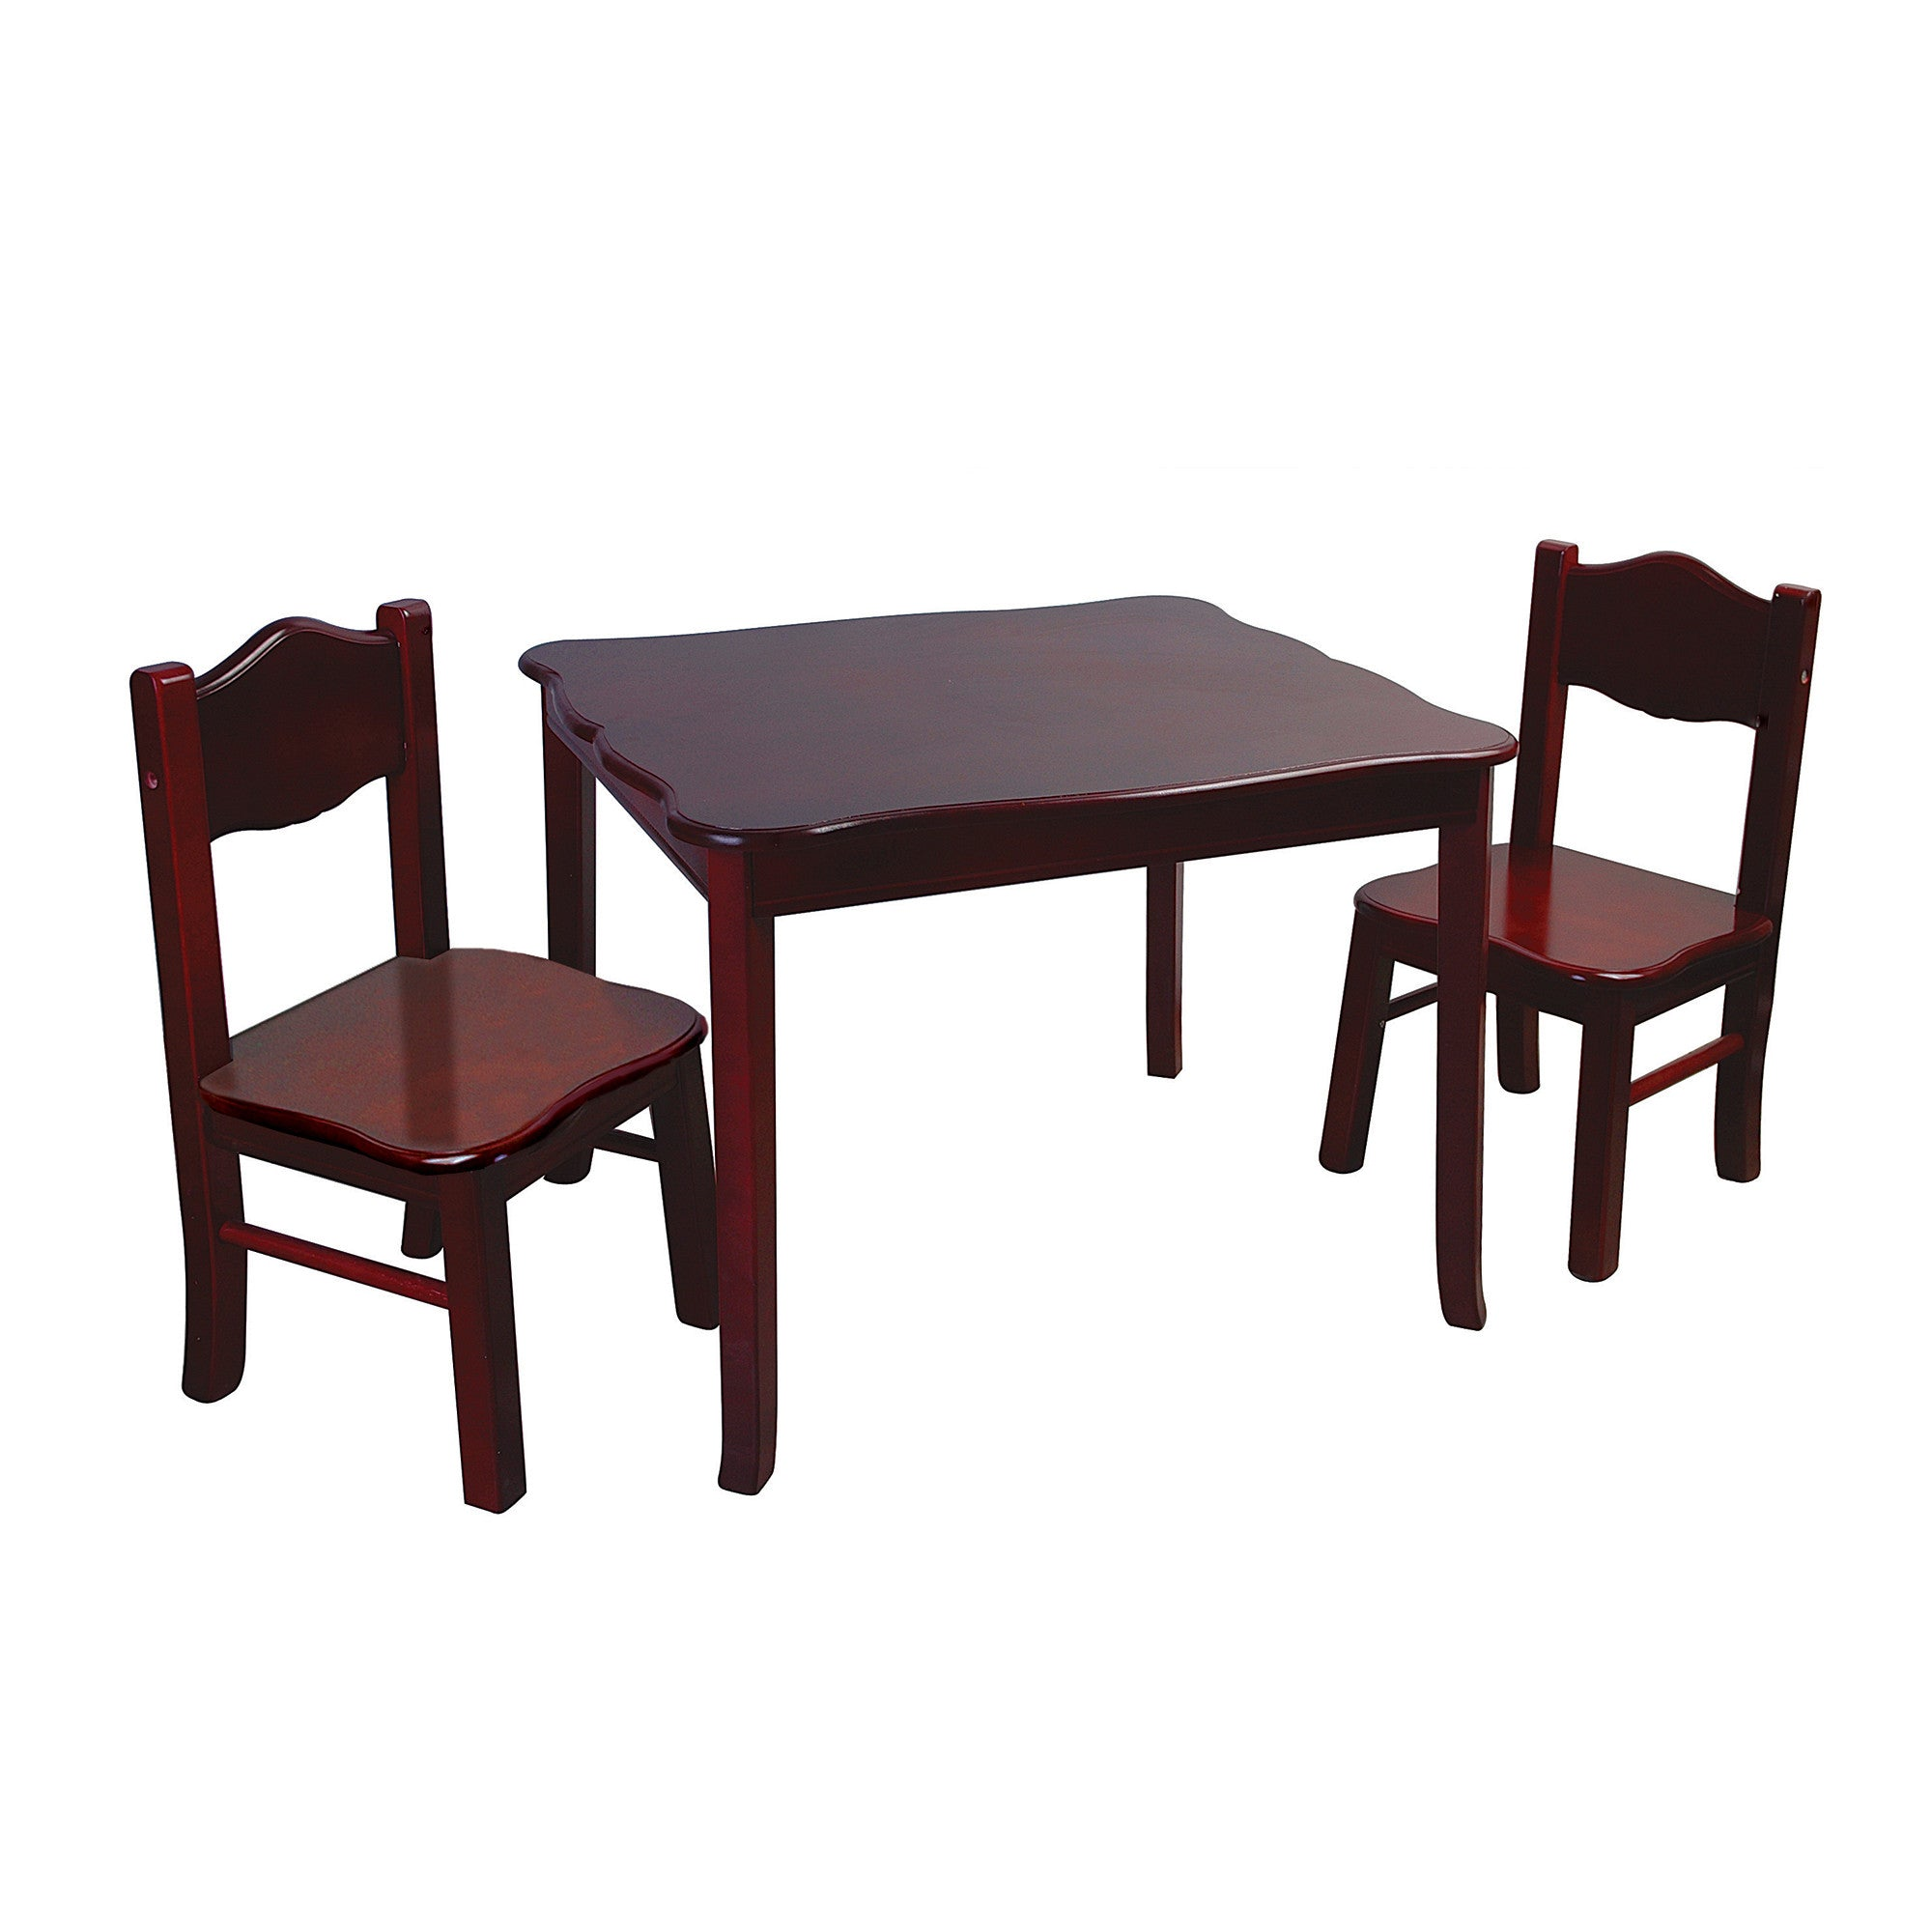 Guidecraft Classic Espresso Table & Chair G86202